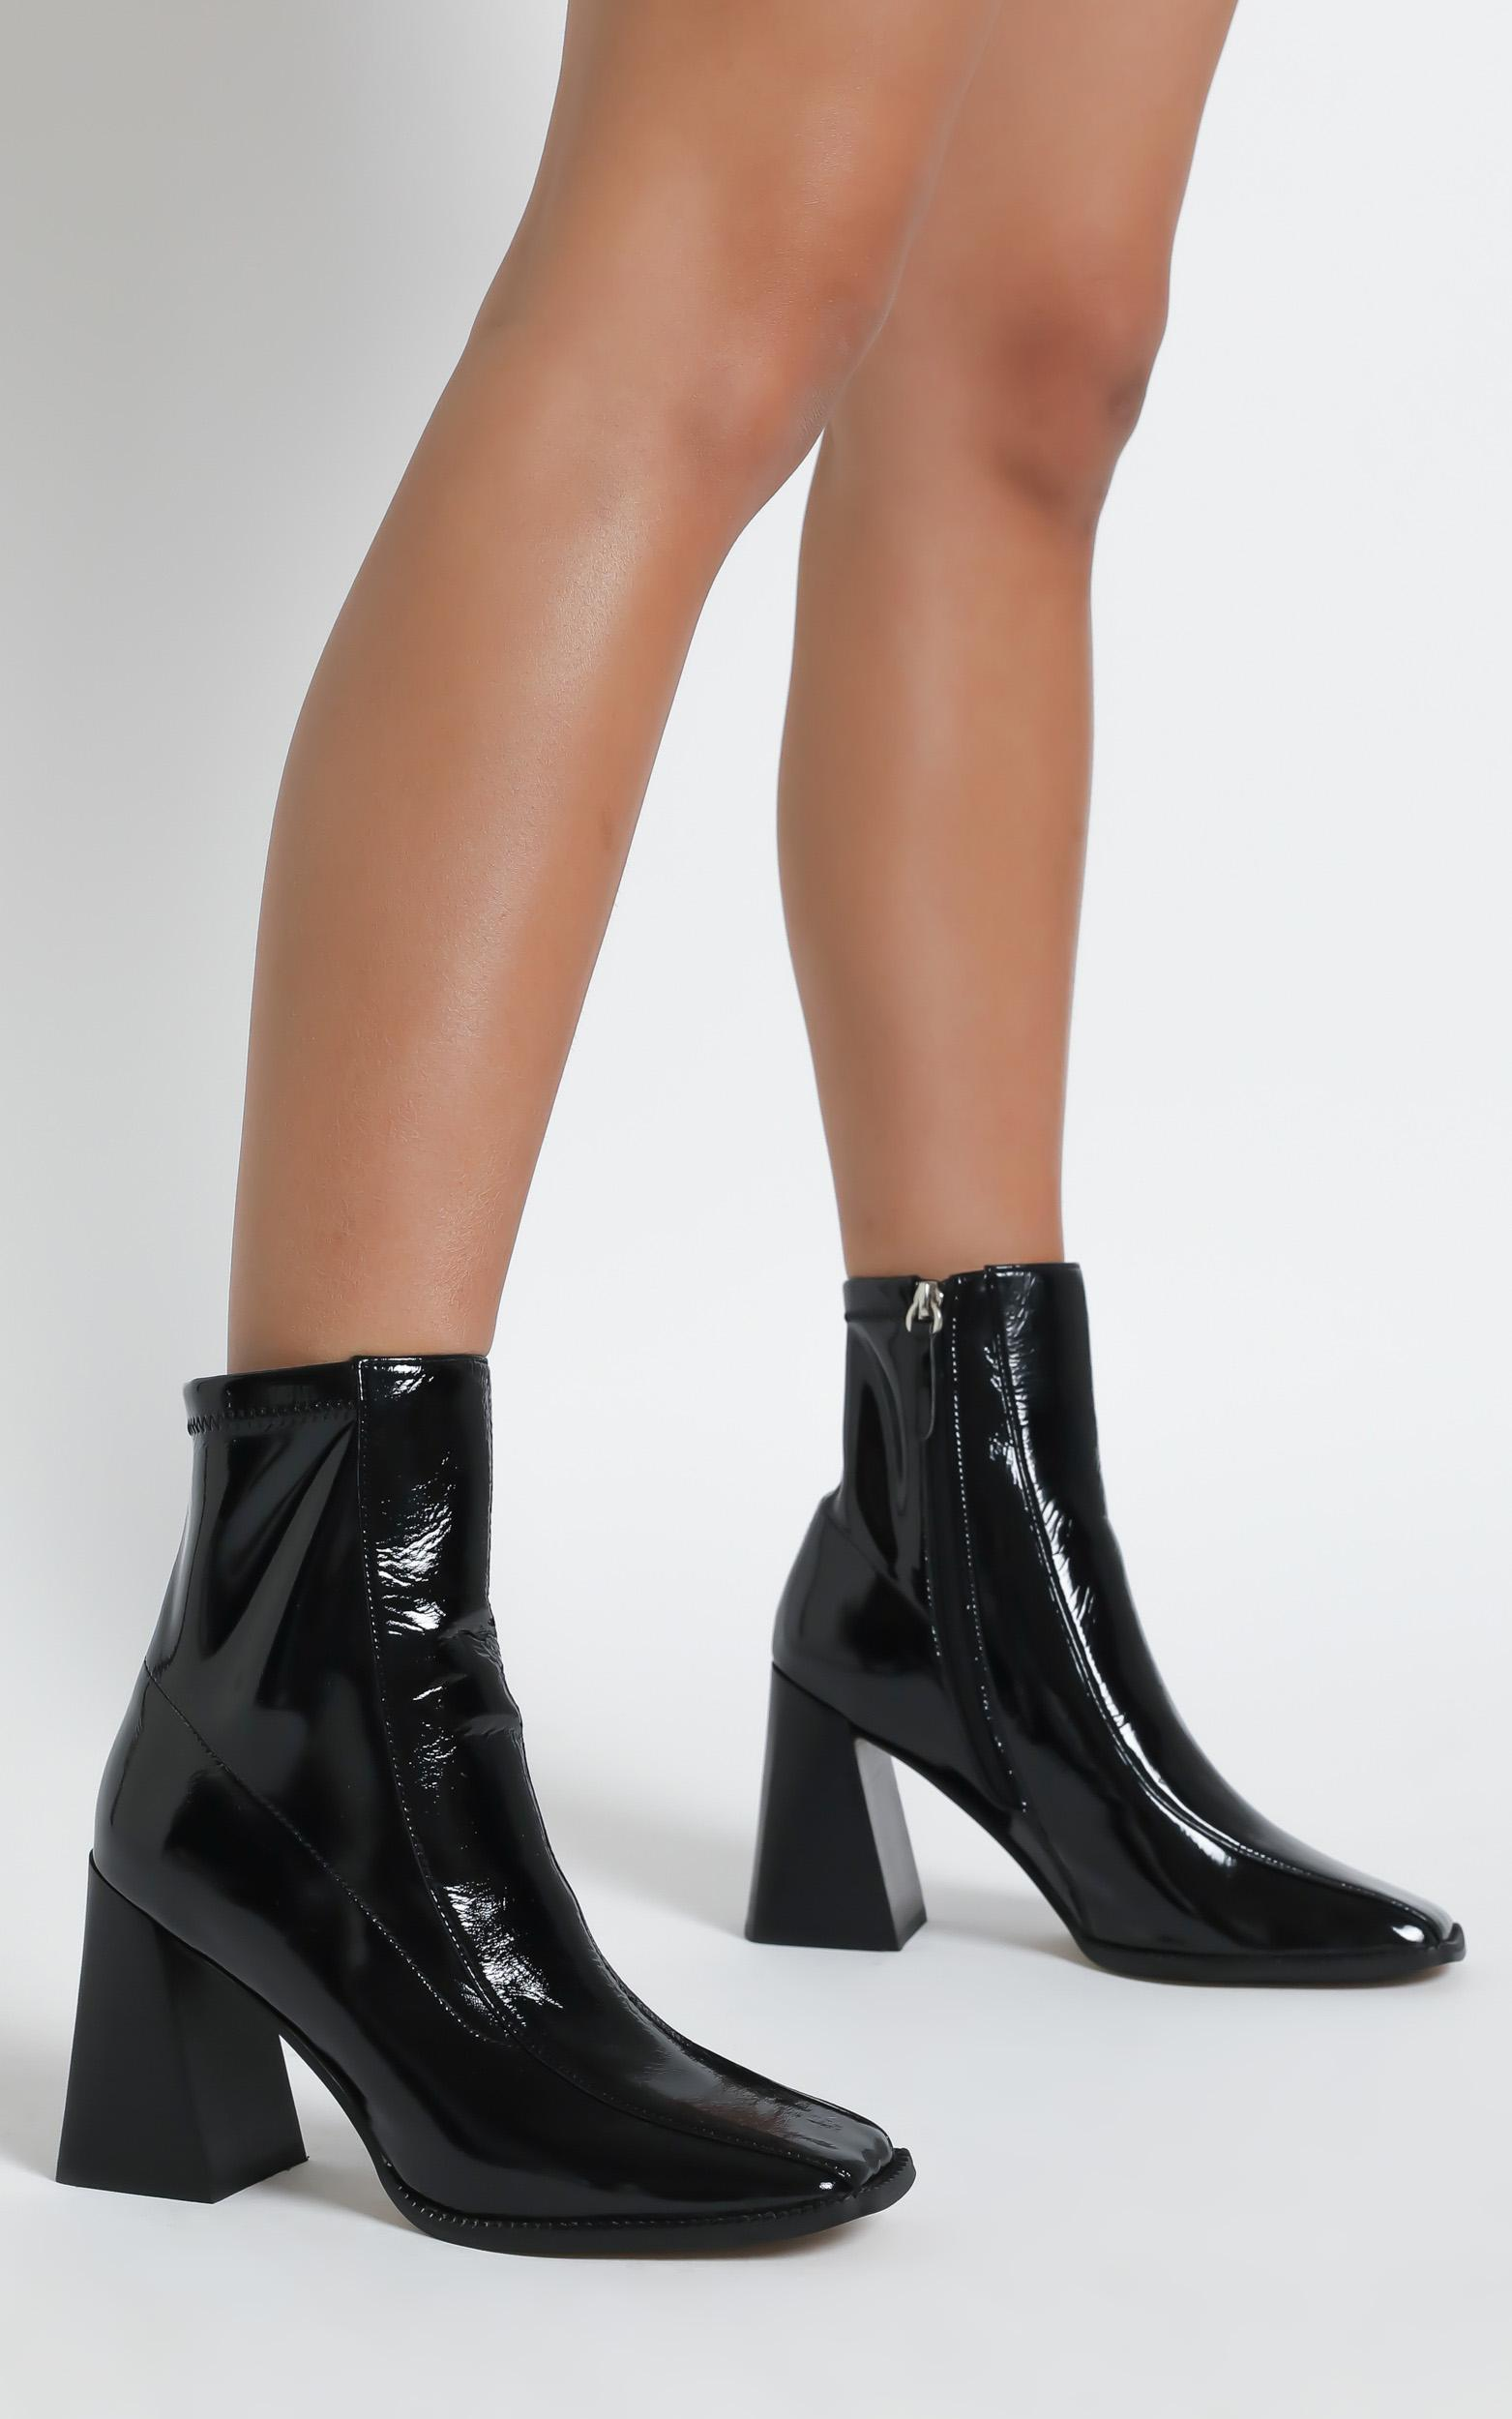 Alias Mae - Tide Boots in Black Stretch Patent - 5.5, BLK10, hi-res image number null